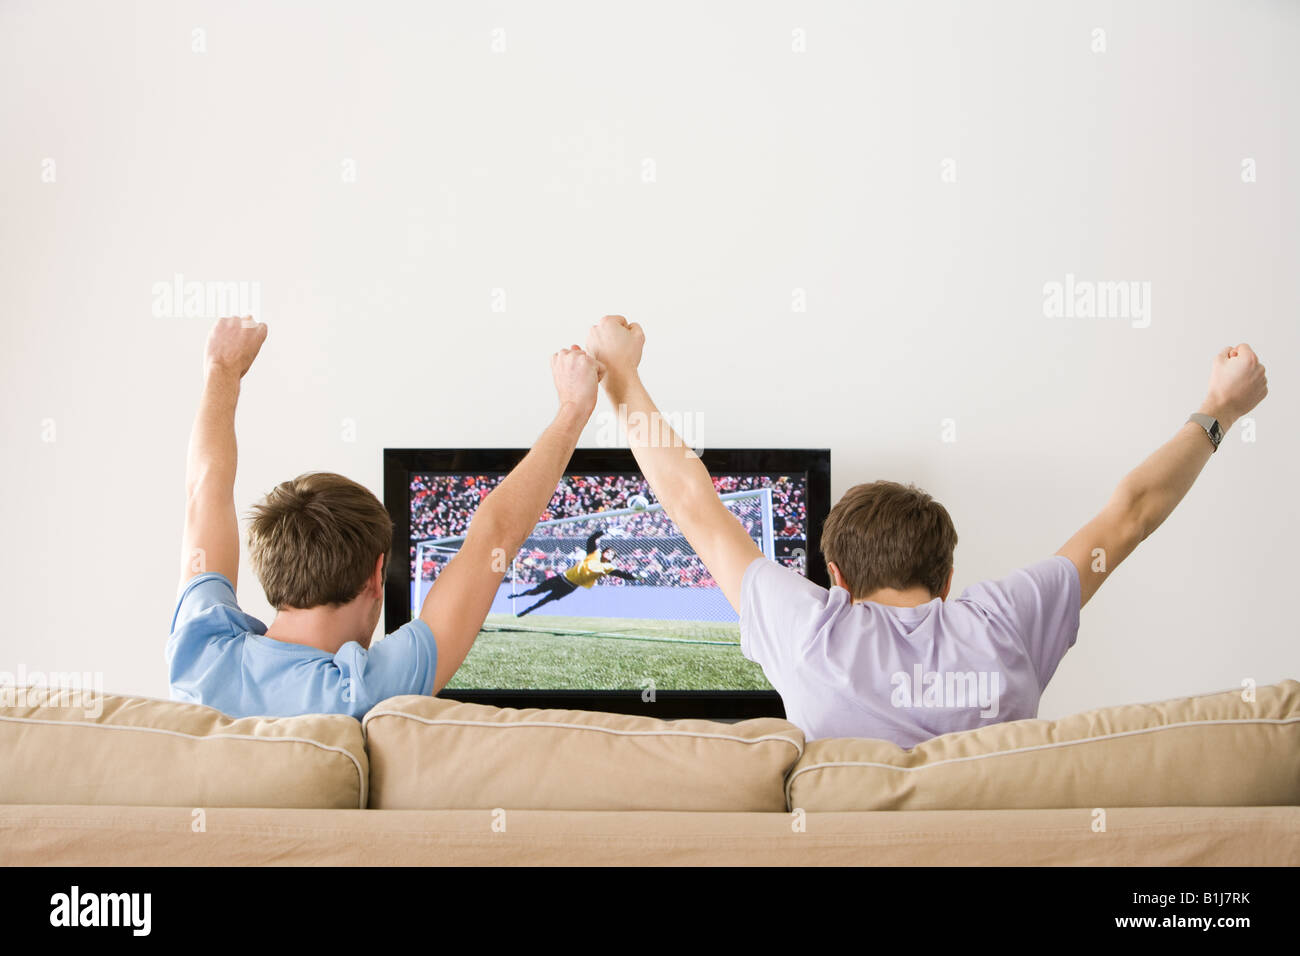 Two young men cheering at football on the tv - Stock Image